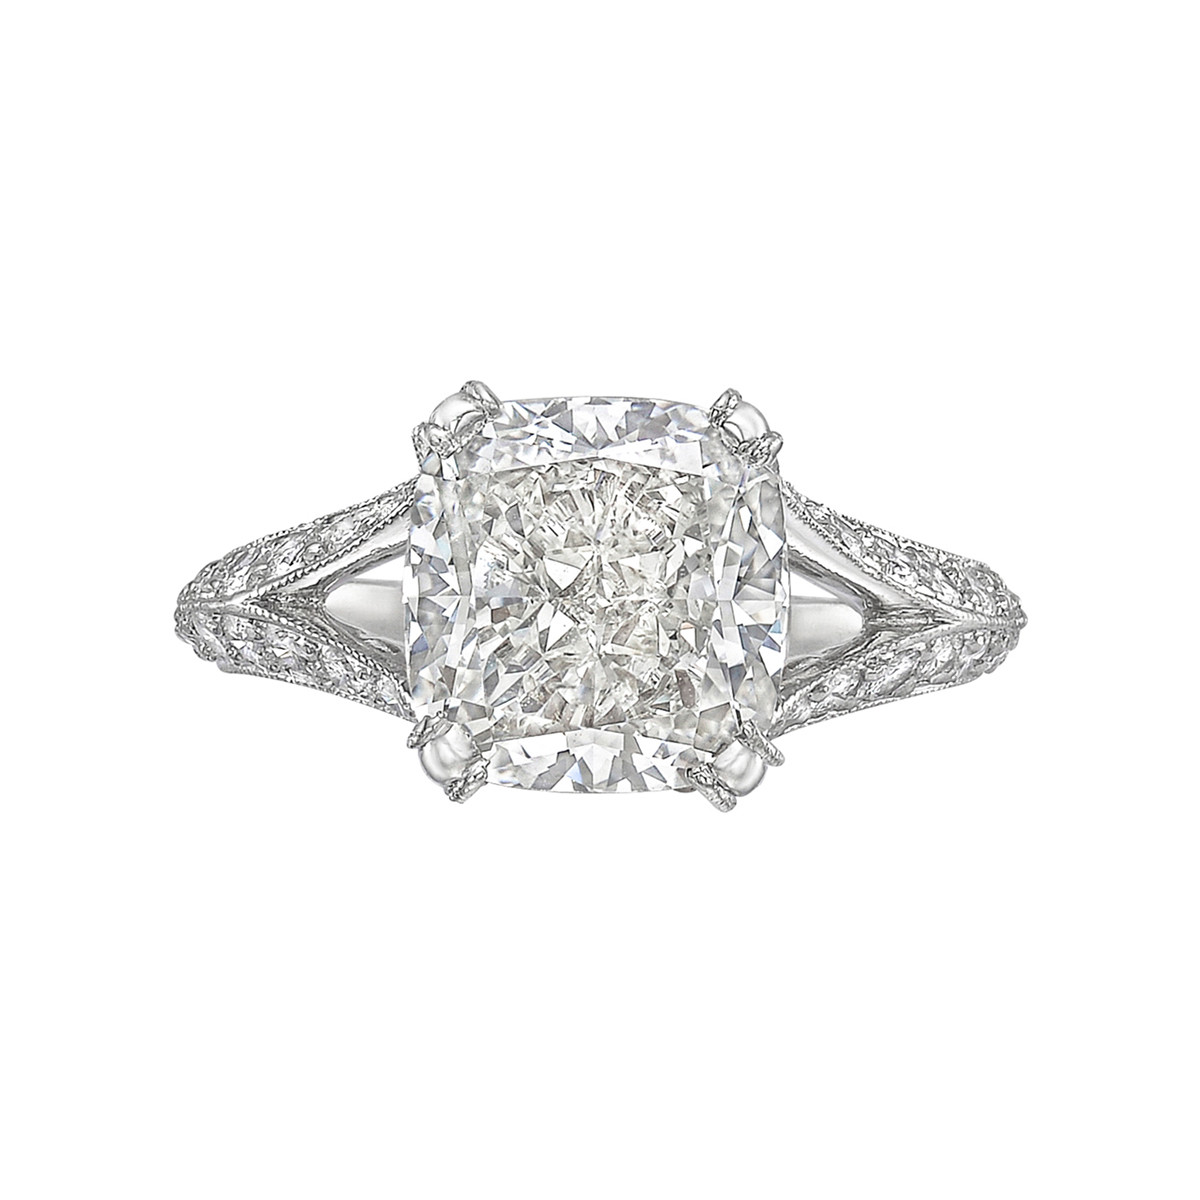 3.02ct Cushion-Cut Diamond Ring (E/VS2)